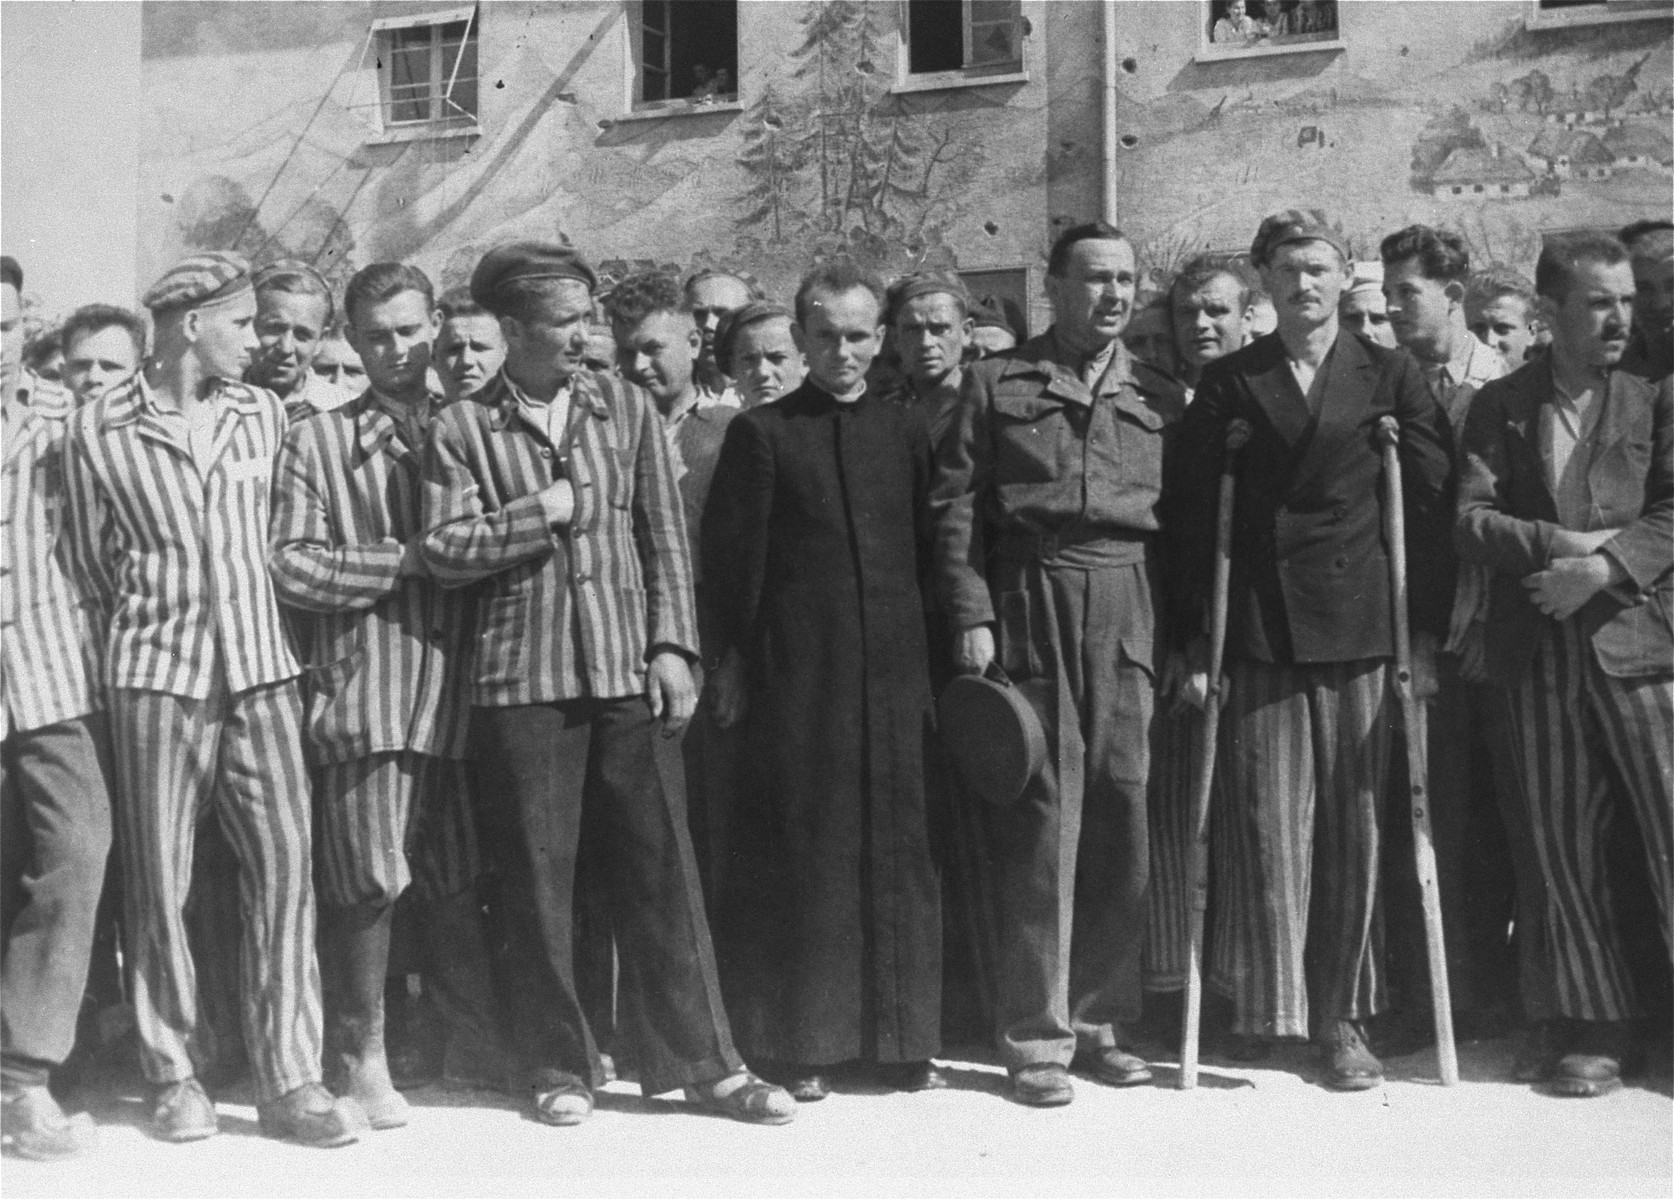 Major Edminson of UNRRA in Dachau with survivors his agency is aiding.  The priest next to him is a Pole and is one of the 150 survivors of 2500 Polish Roman Catholic priests who were incarcerated in Dachau.